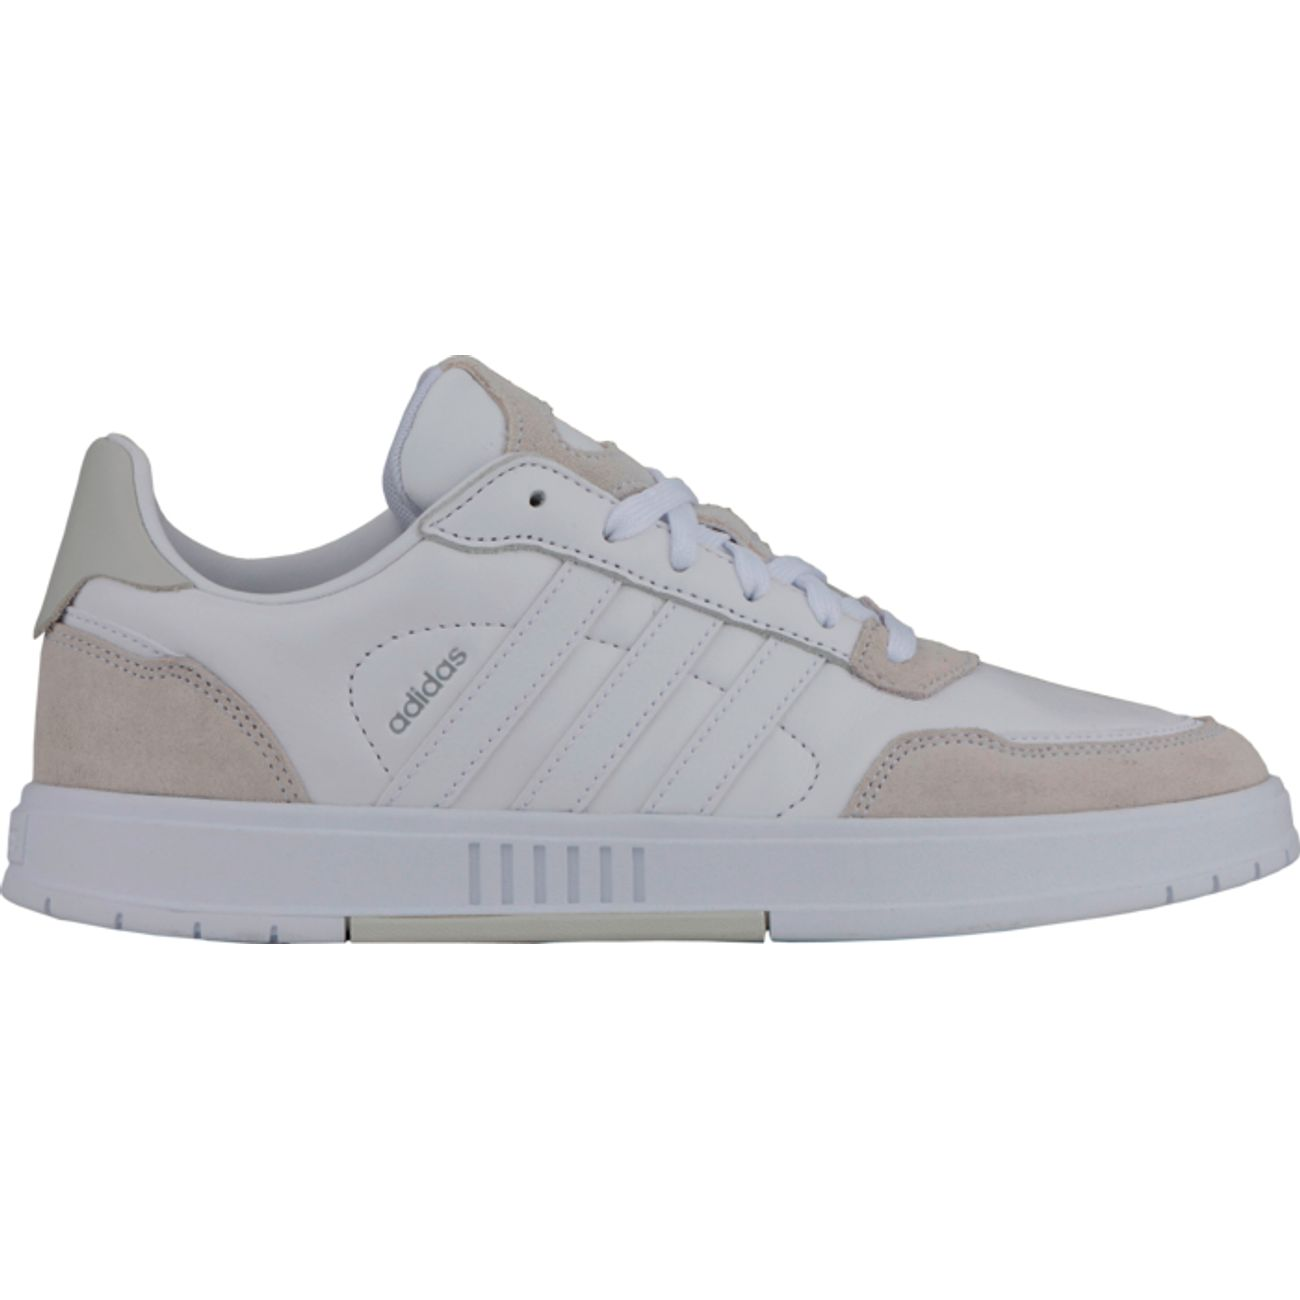 CHAUSSURES BASSES Loisirs femme ADIDAS COURTMASTER